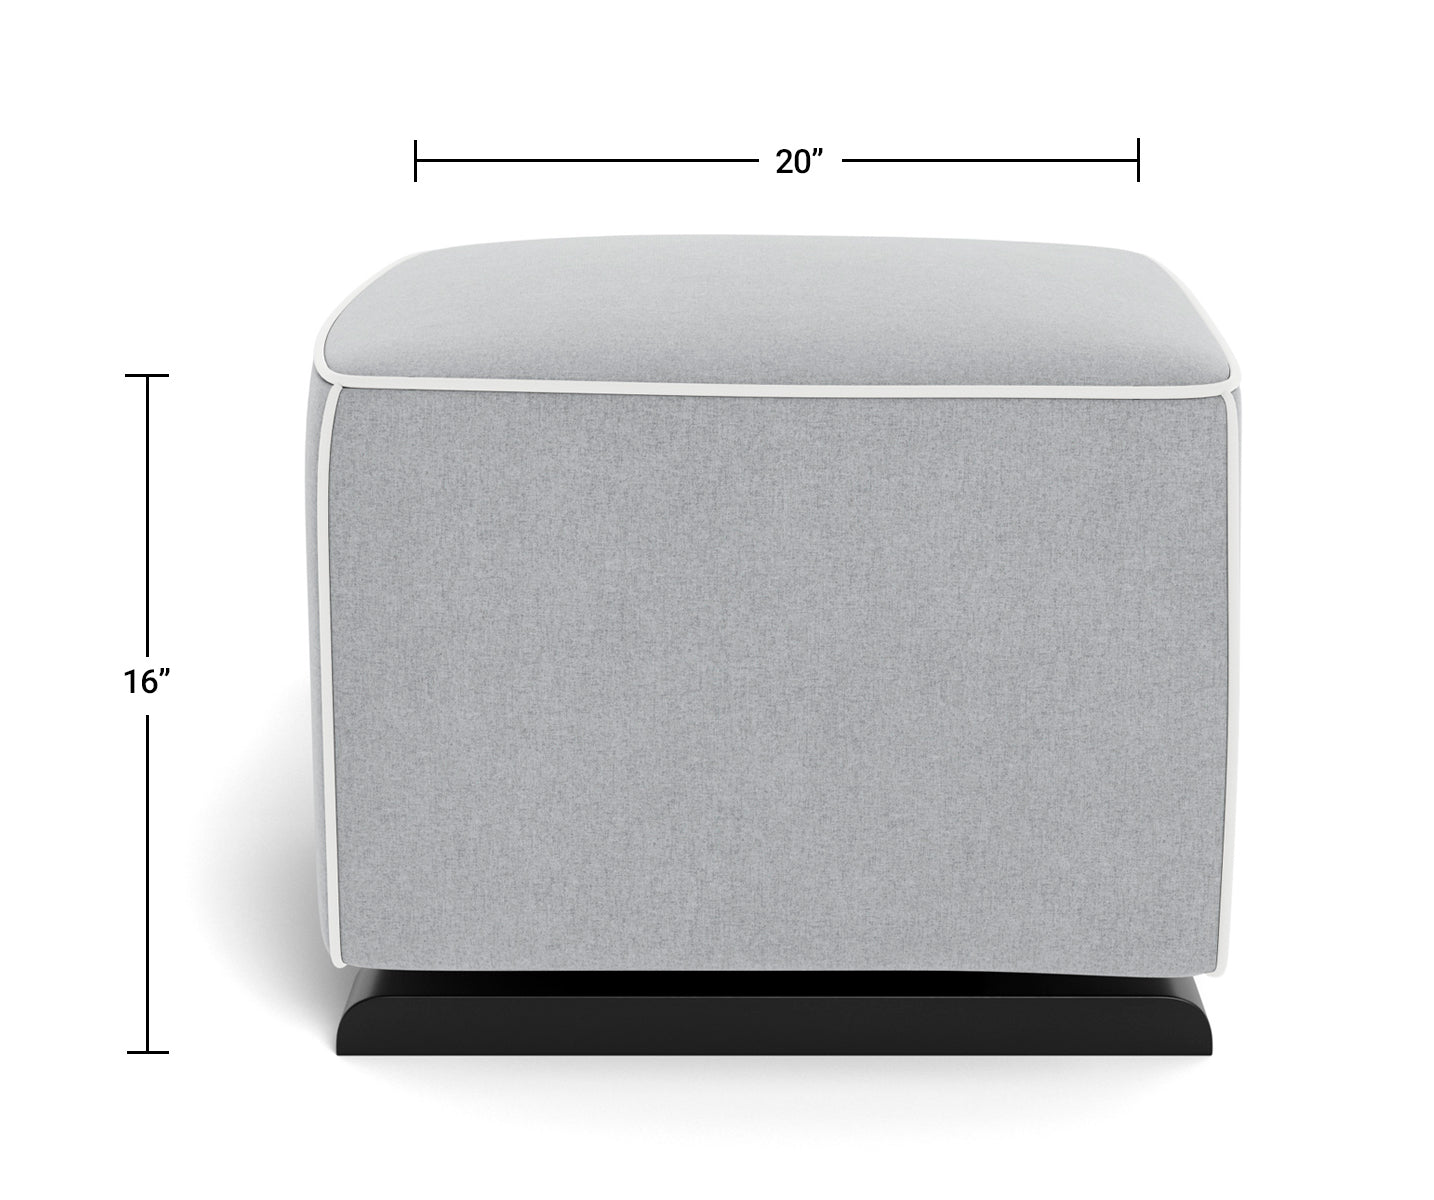 Modern Nursery Ottoman - Luca Ottoman Dimensions Front View